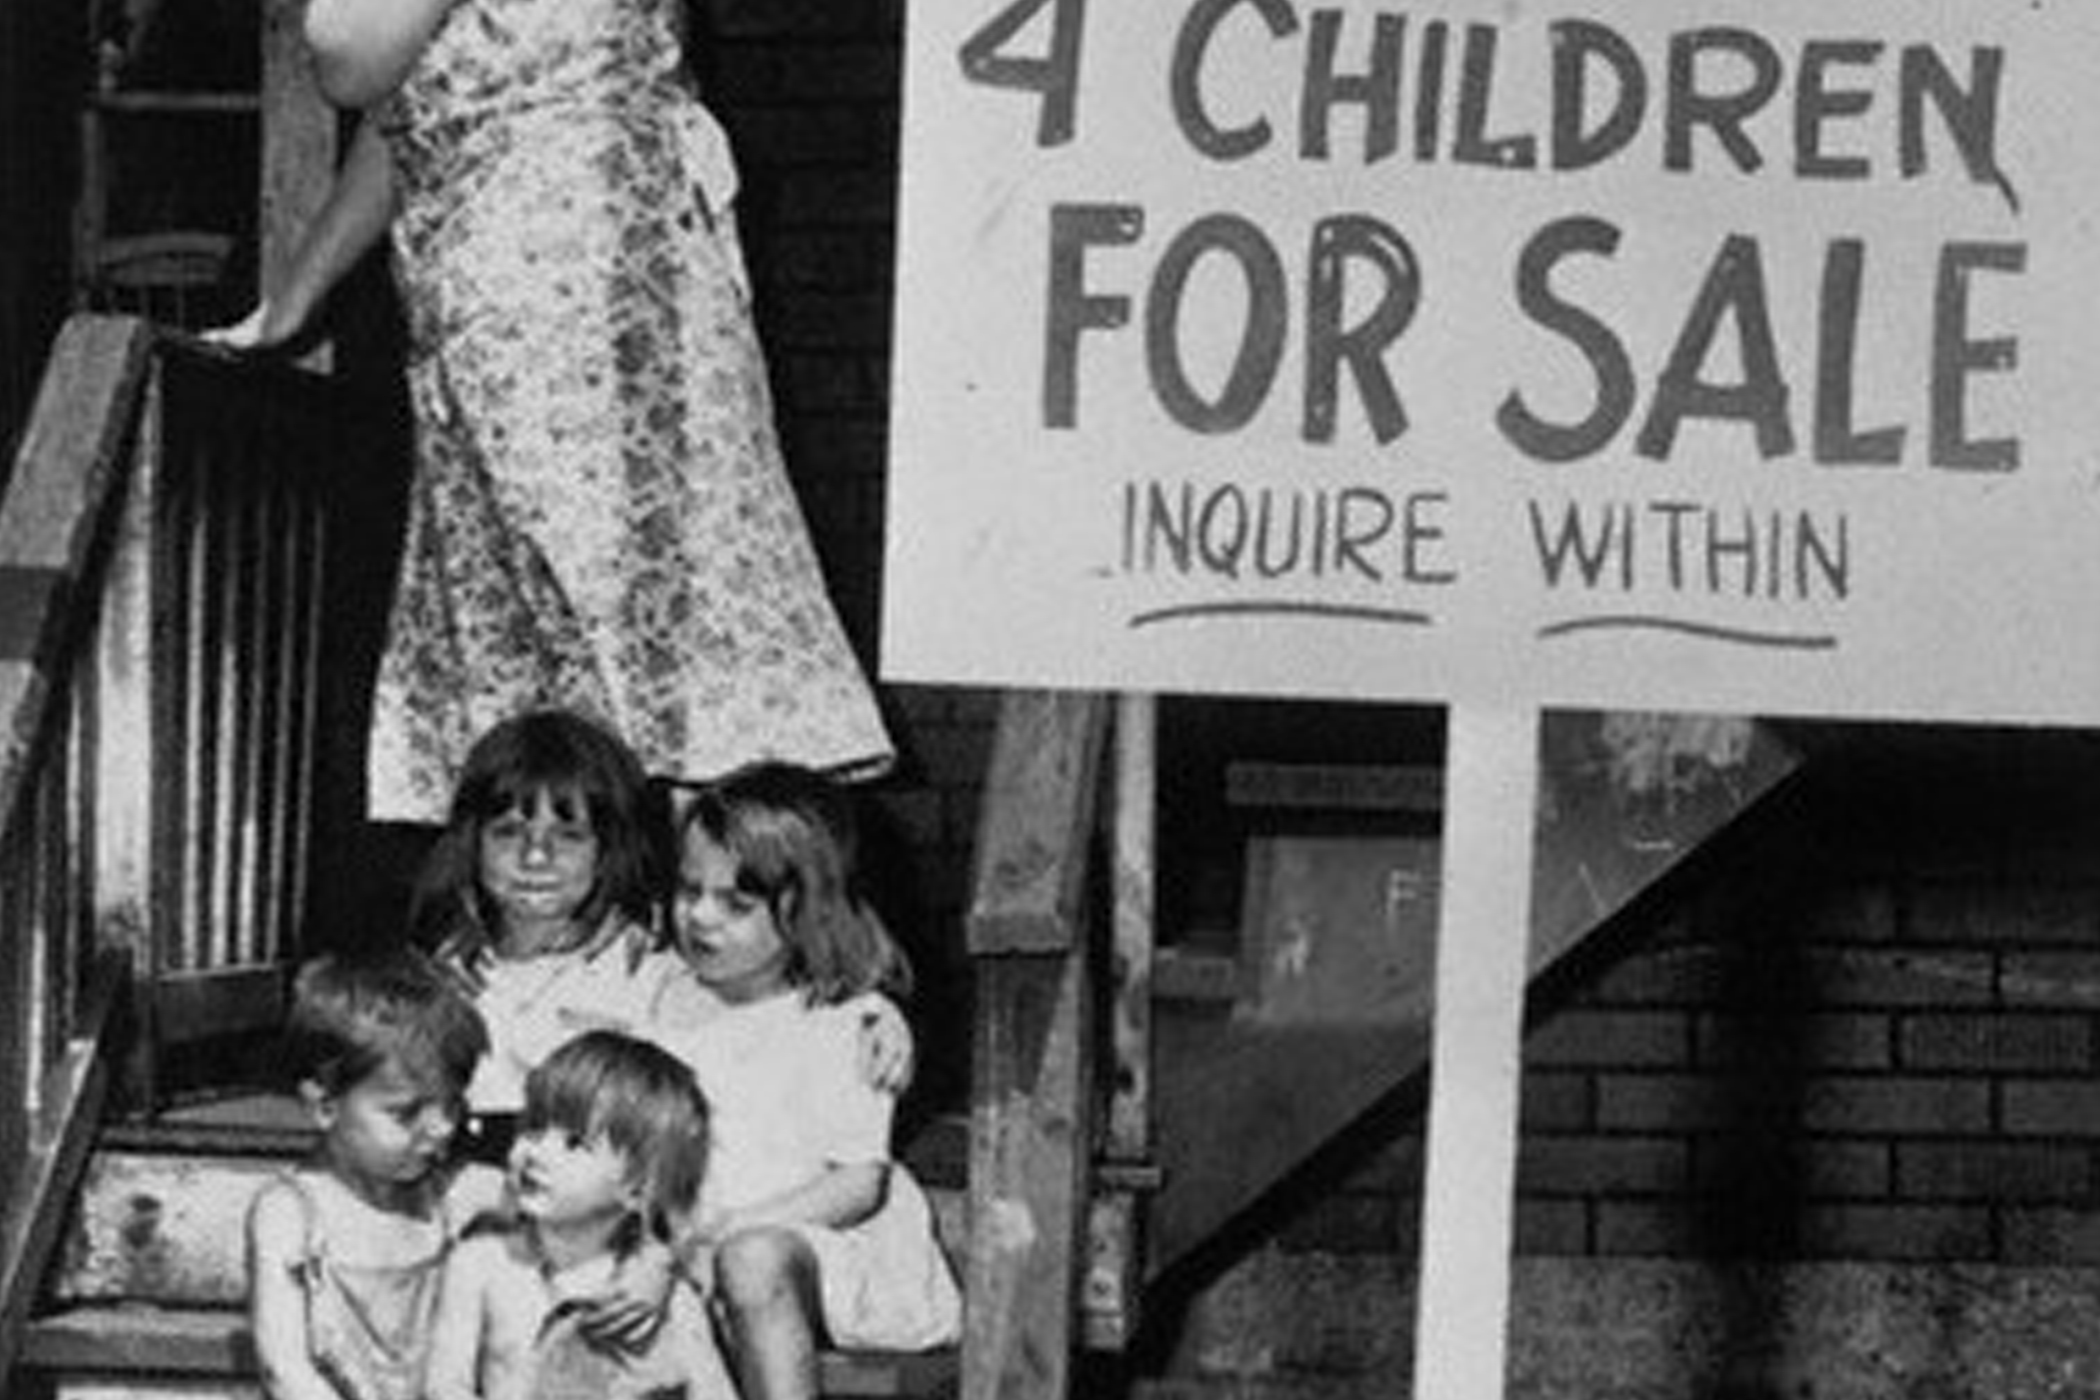 4 children 4 sale 2.jpg